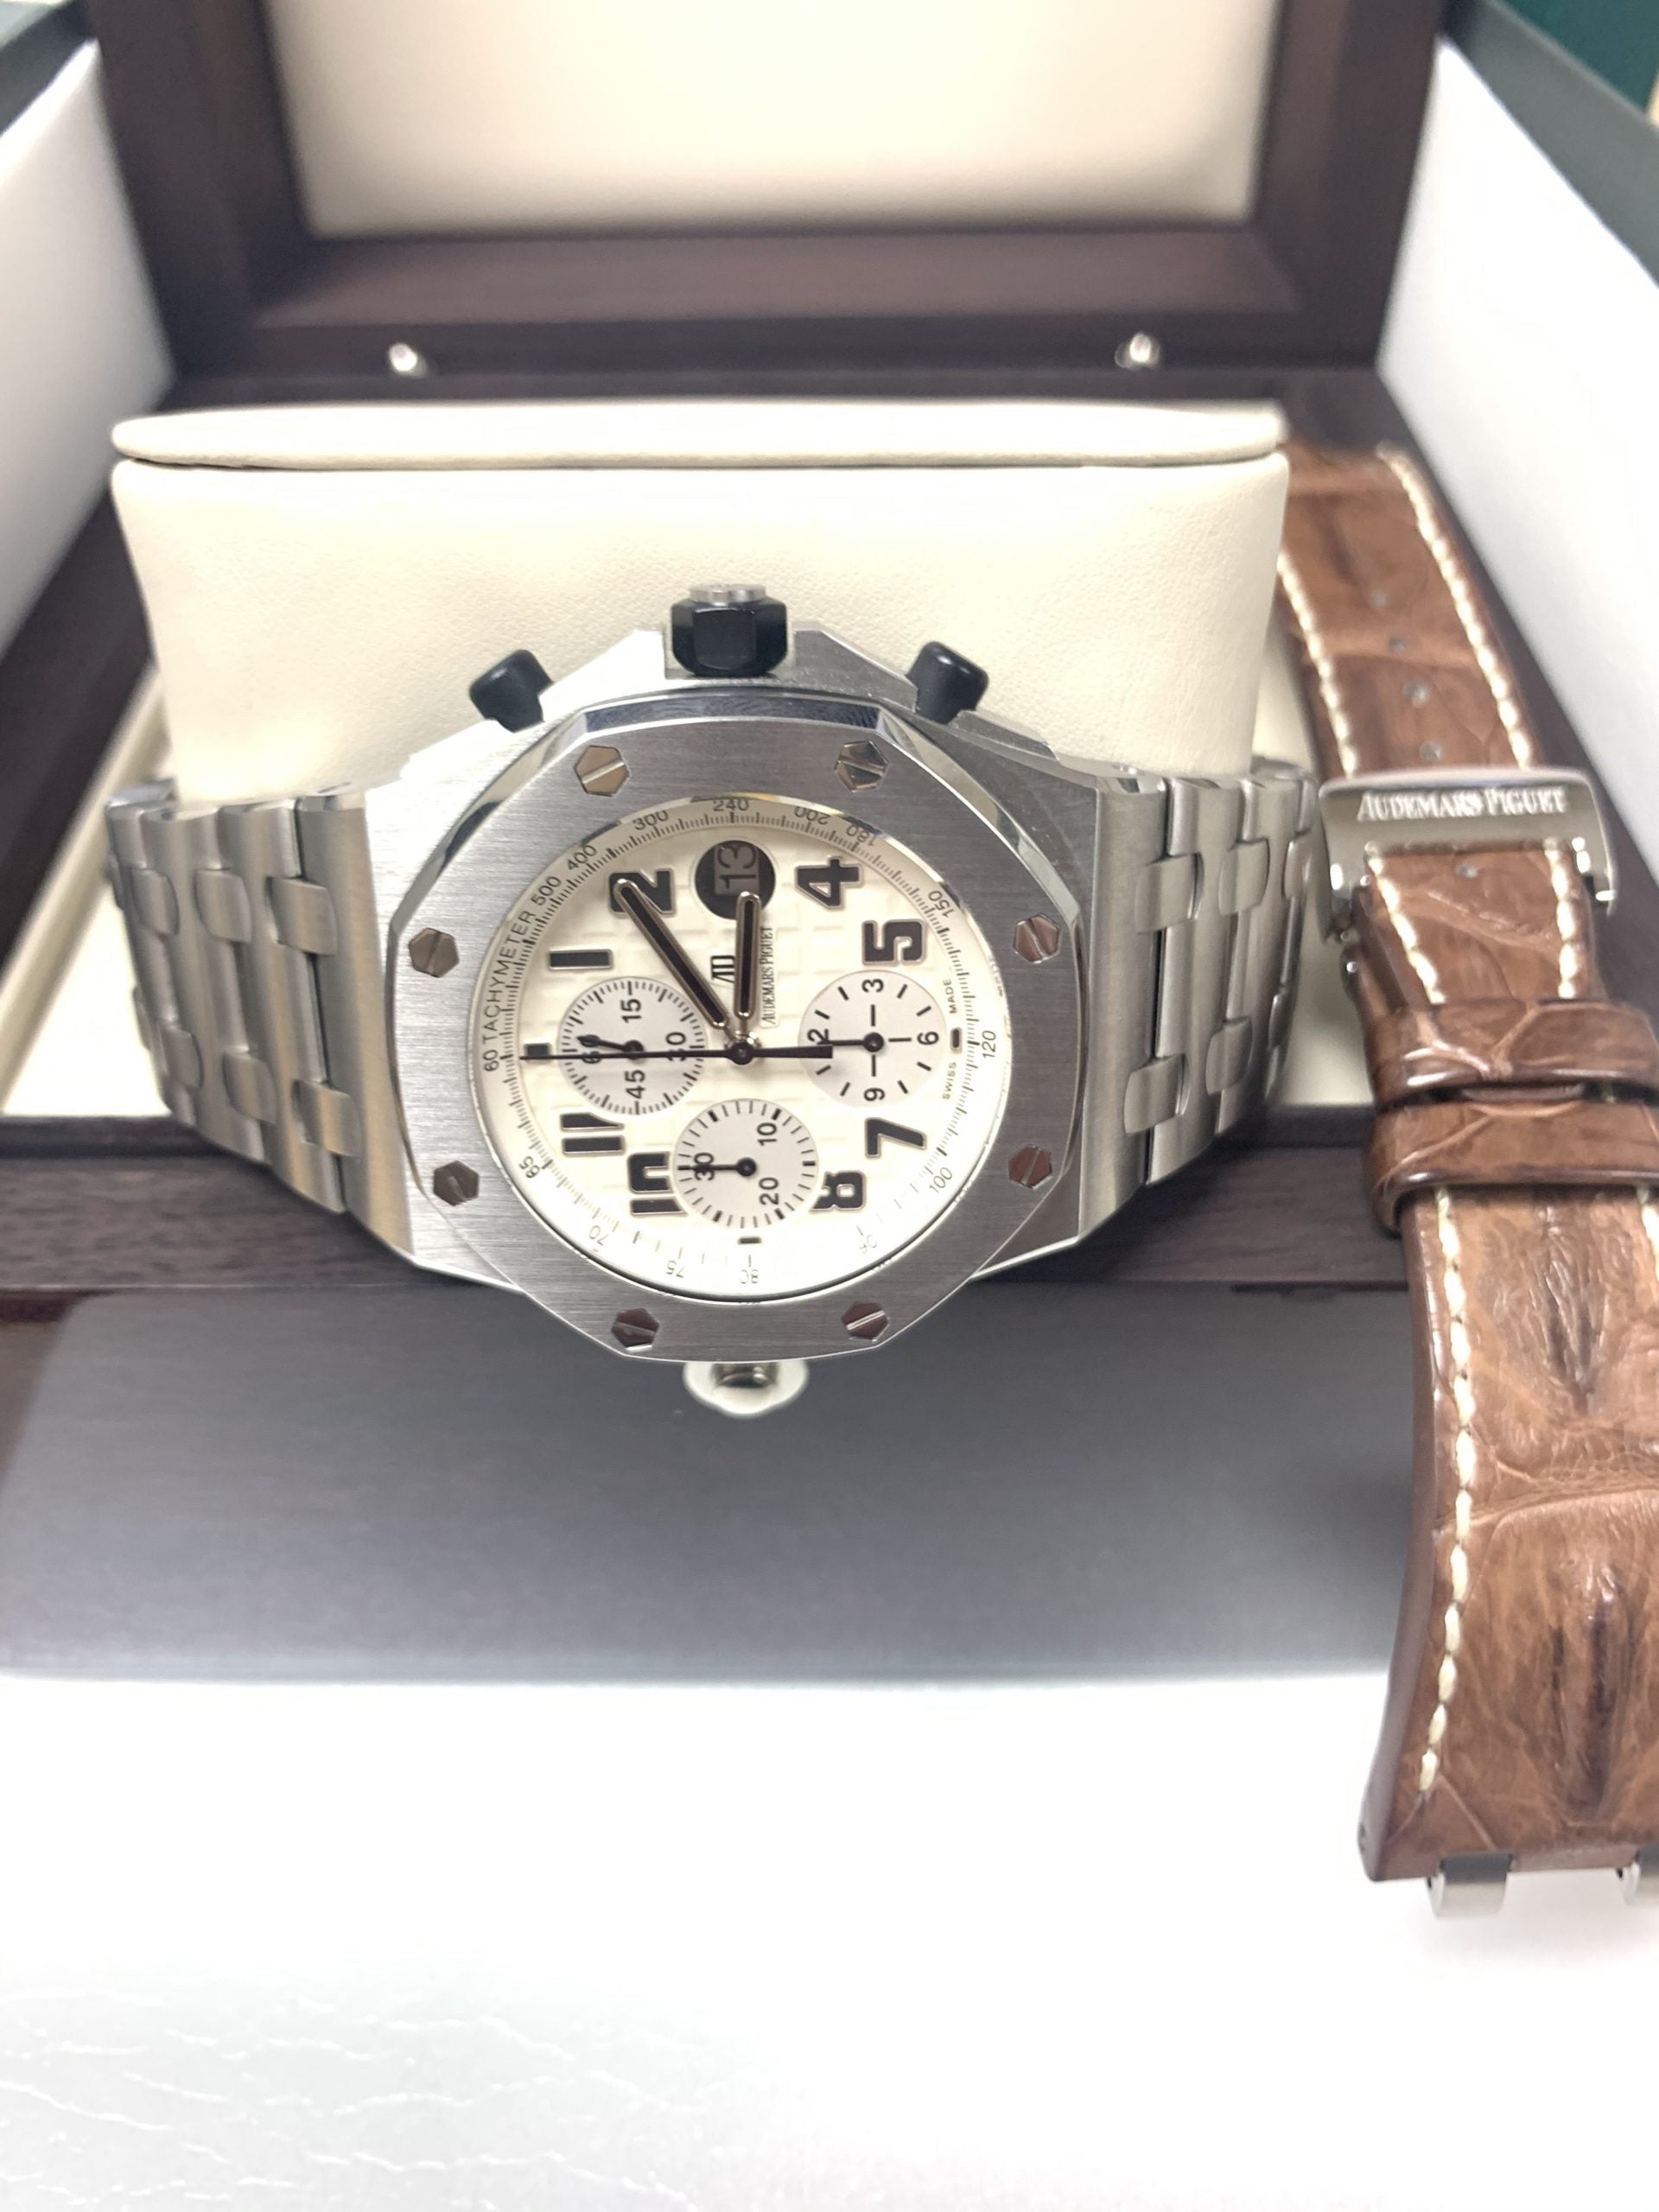 Audemars Piguet Safari 42mm Stainless Steel Case w/ Ivory Dial - 26170ST.00.D09CR.01